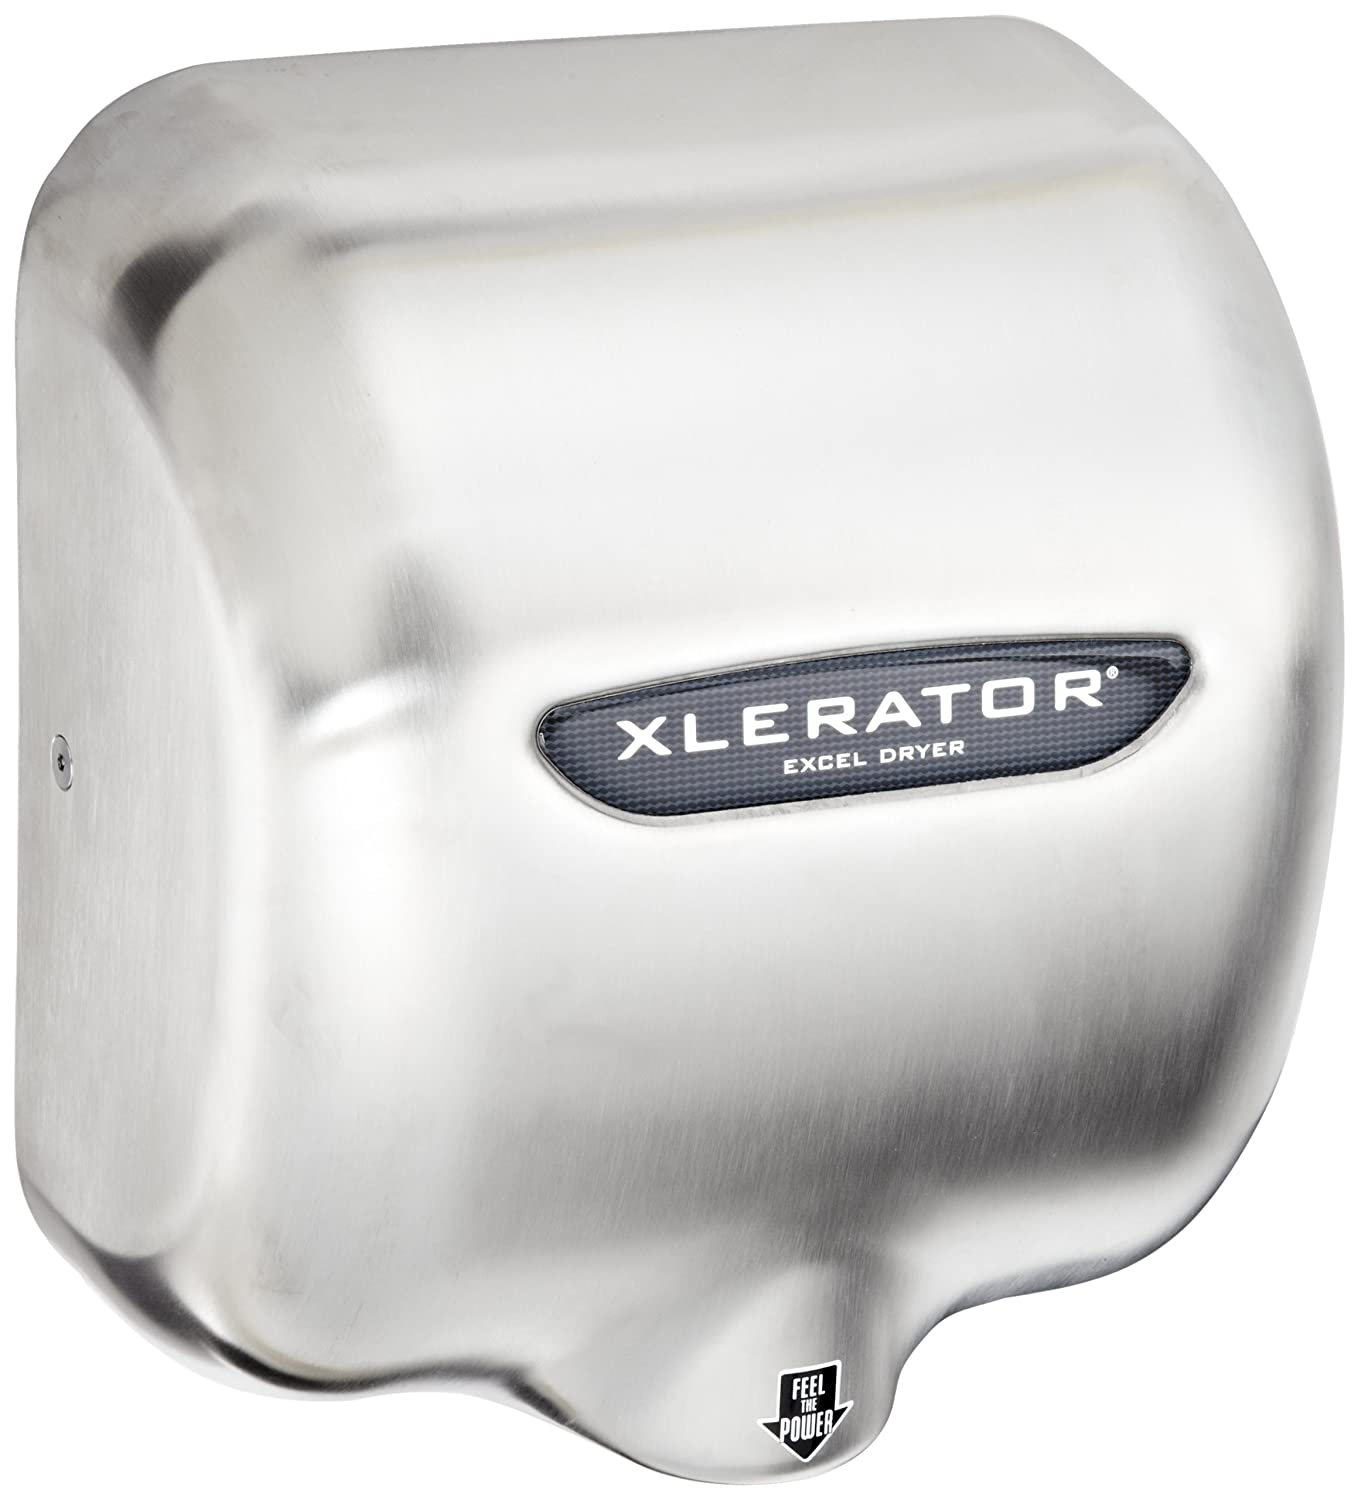 Merveilleux Amazon.com: XLERATOR XL SBX Automatic High Speed Hand Dryer With Brushed  Stainless Steel Cover And 1.1 Noise Reduction Nozzle, 5.5 A, 277 V:  Industrial U0026 ...